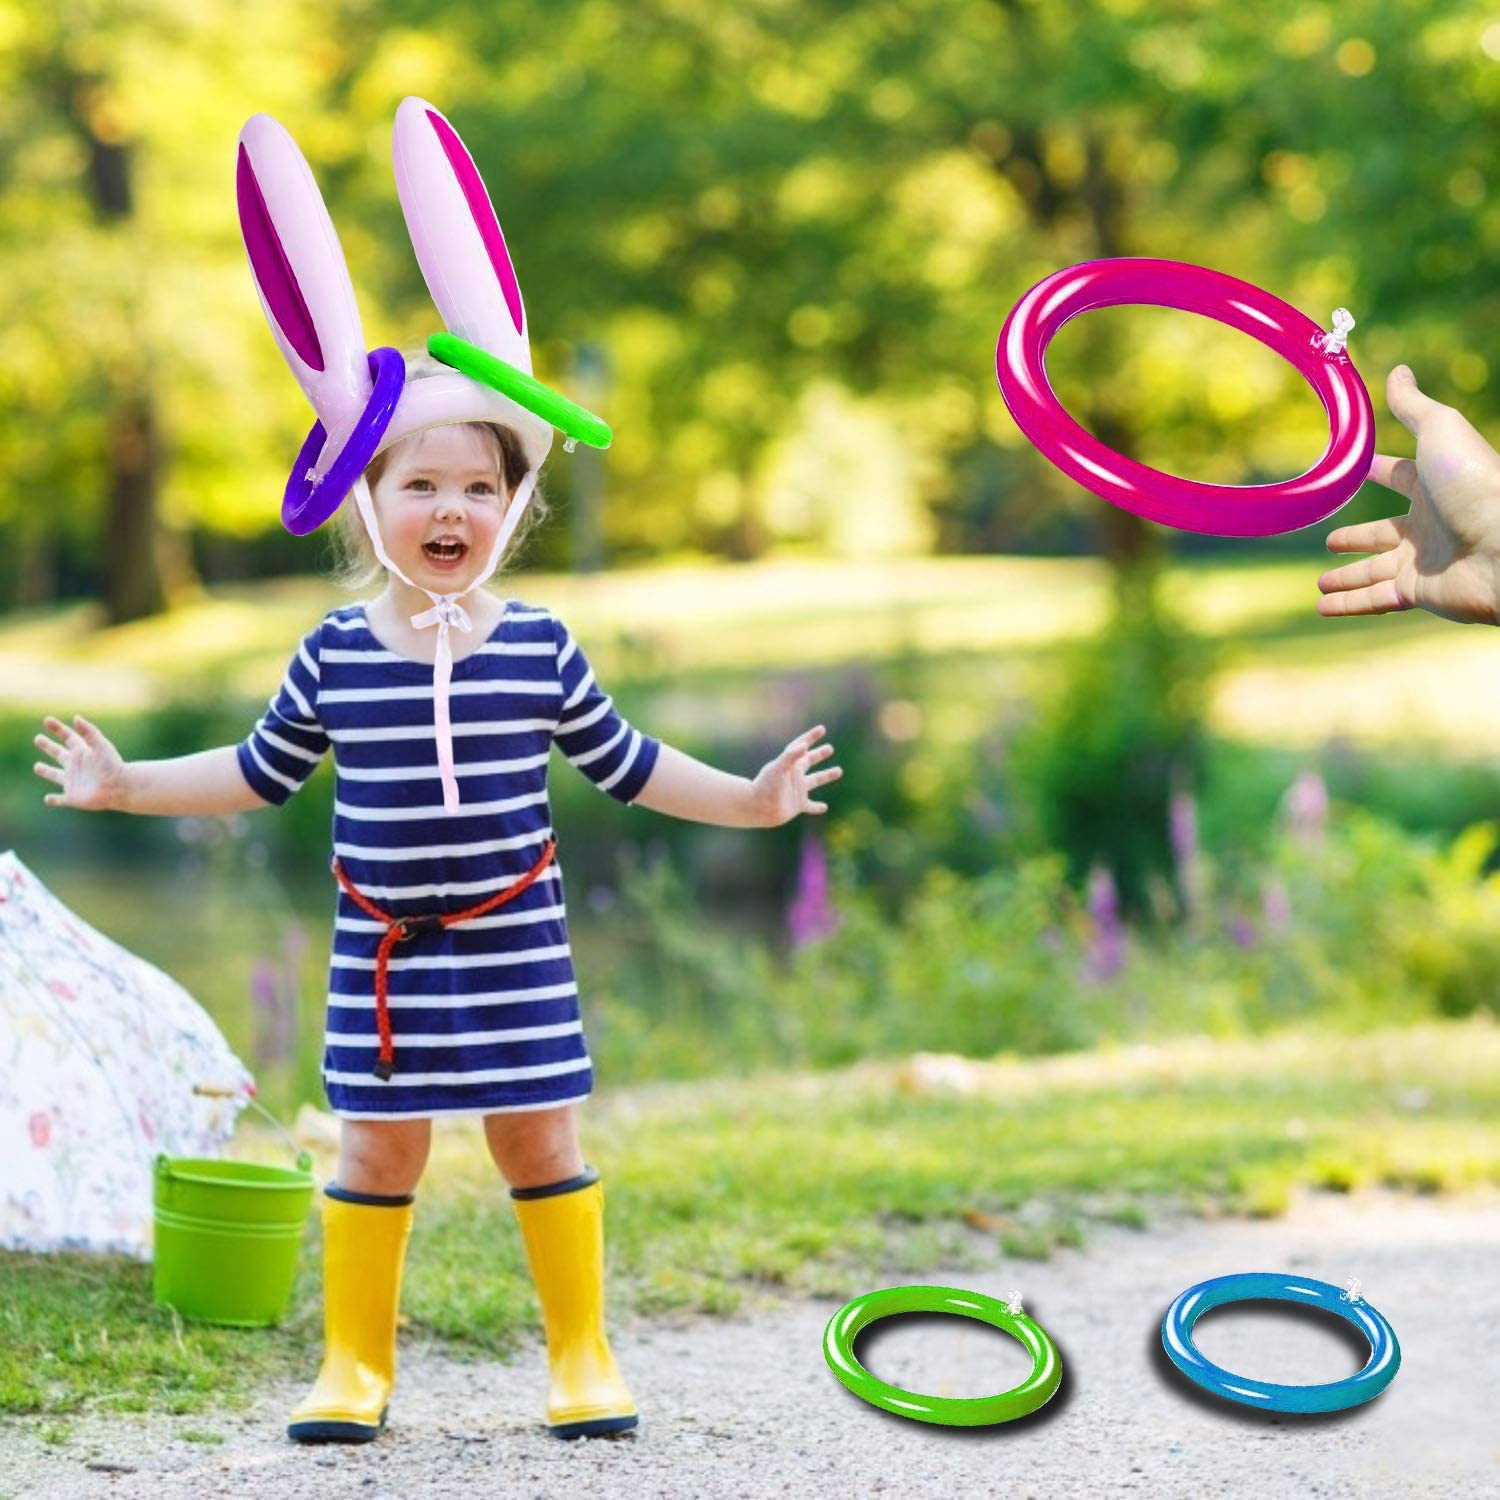 Easter Inflatable Bunny Ring Toss Game Easter Rabbit Ears Ring Toss Party Games Inflatable Toys Gift For Kid Family School Party Favor Indoor Outdoor Toss Game